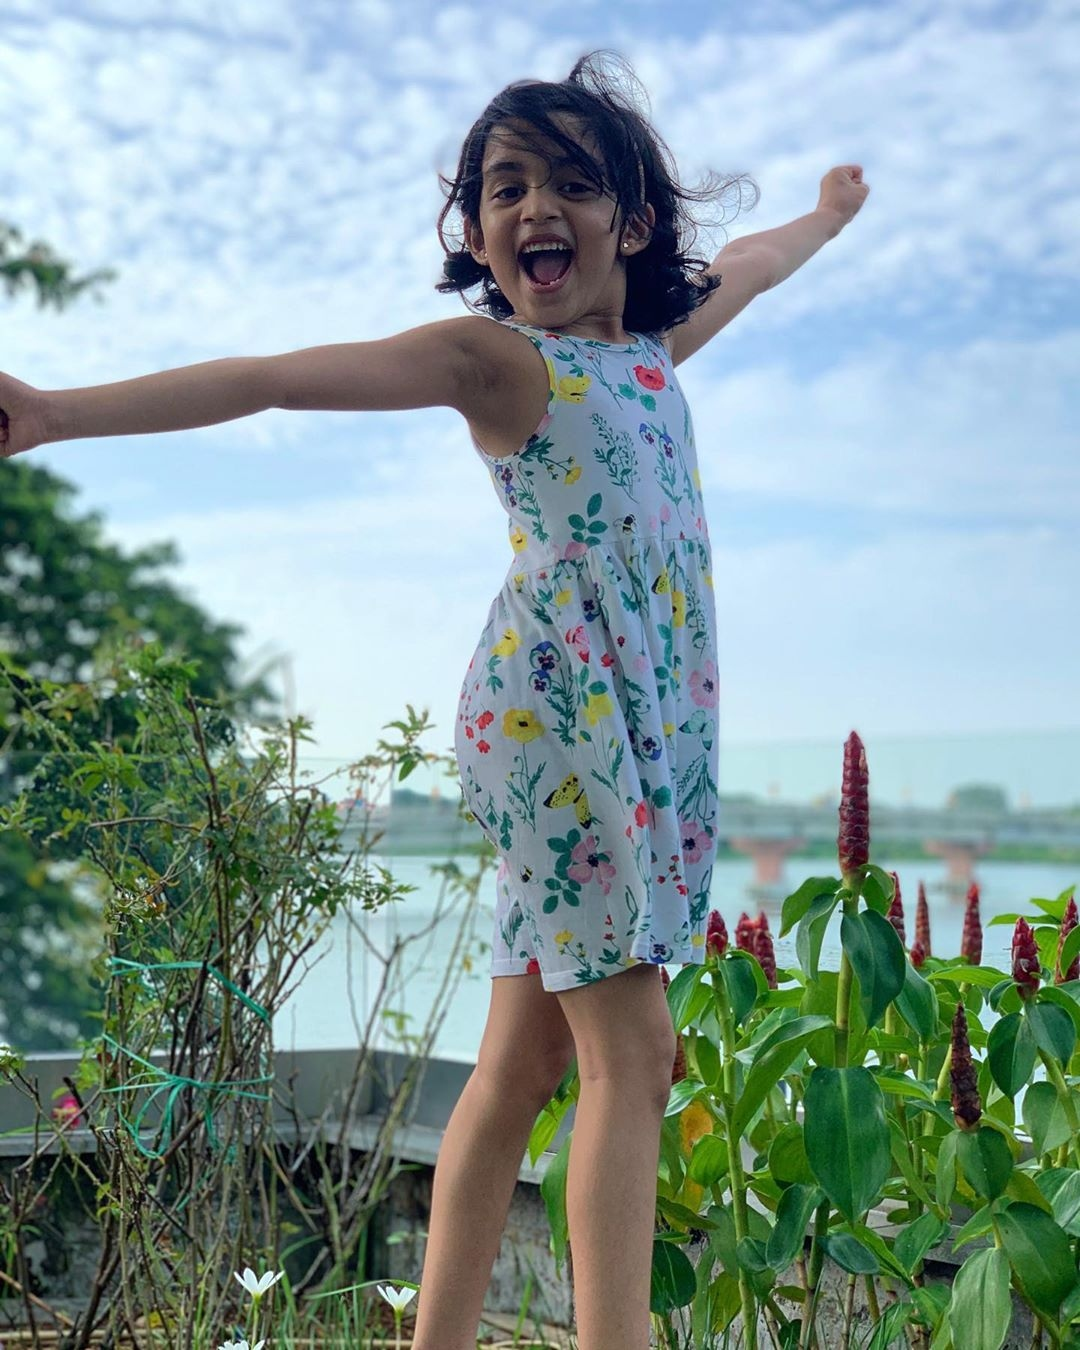 prithviraj daughter birthday photos